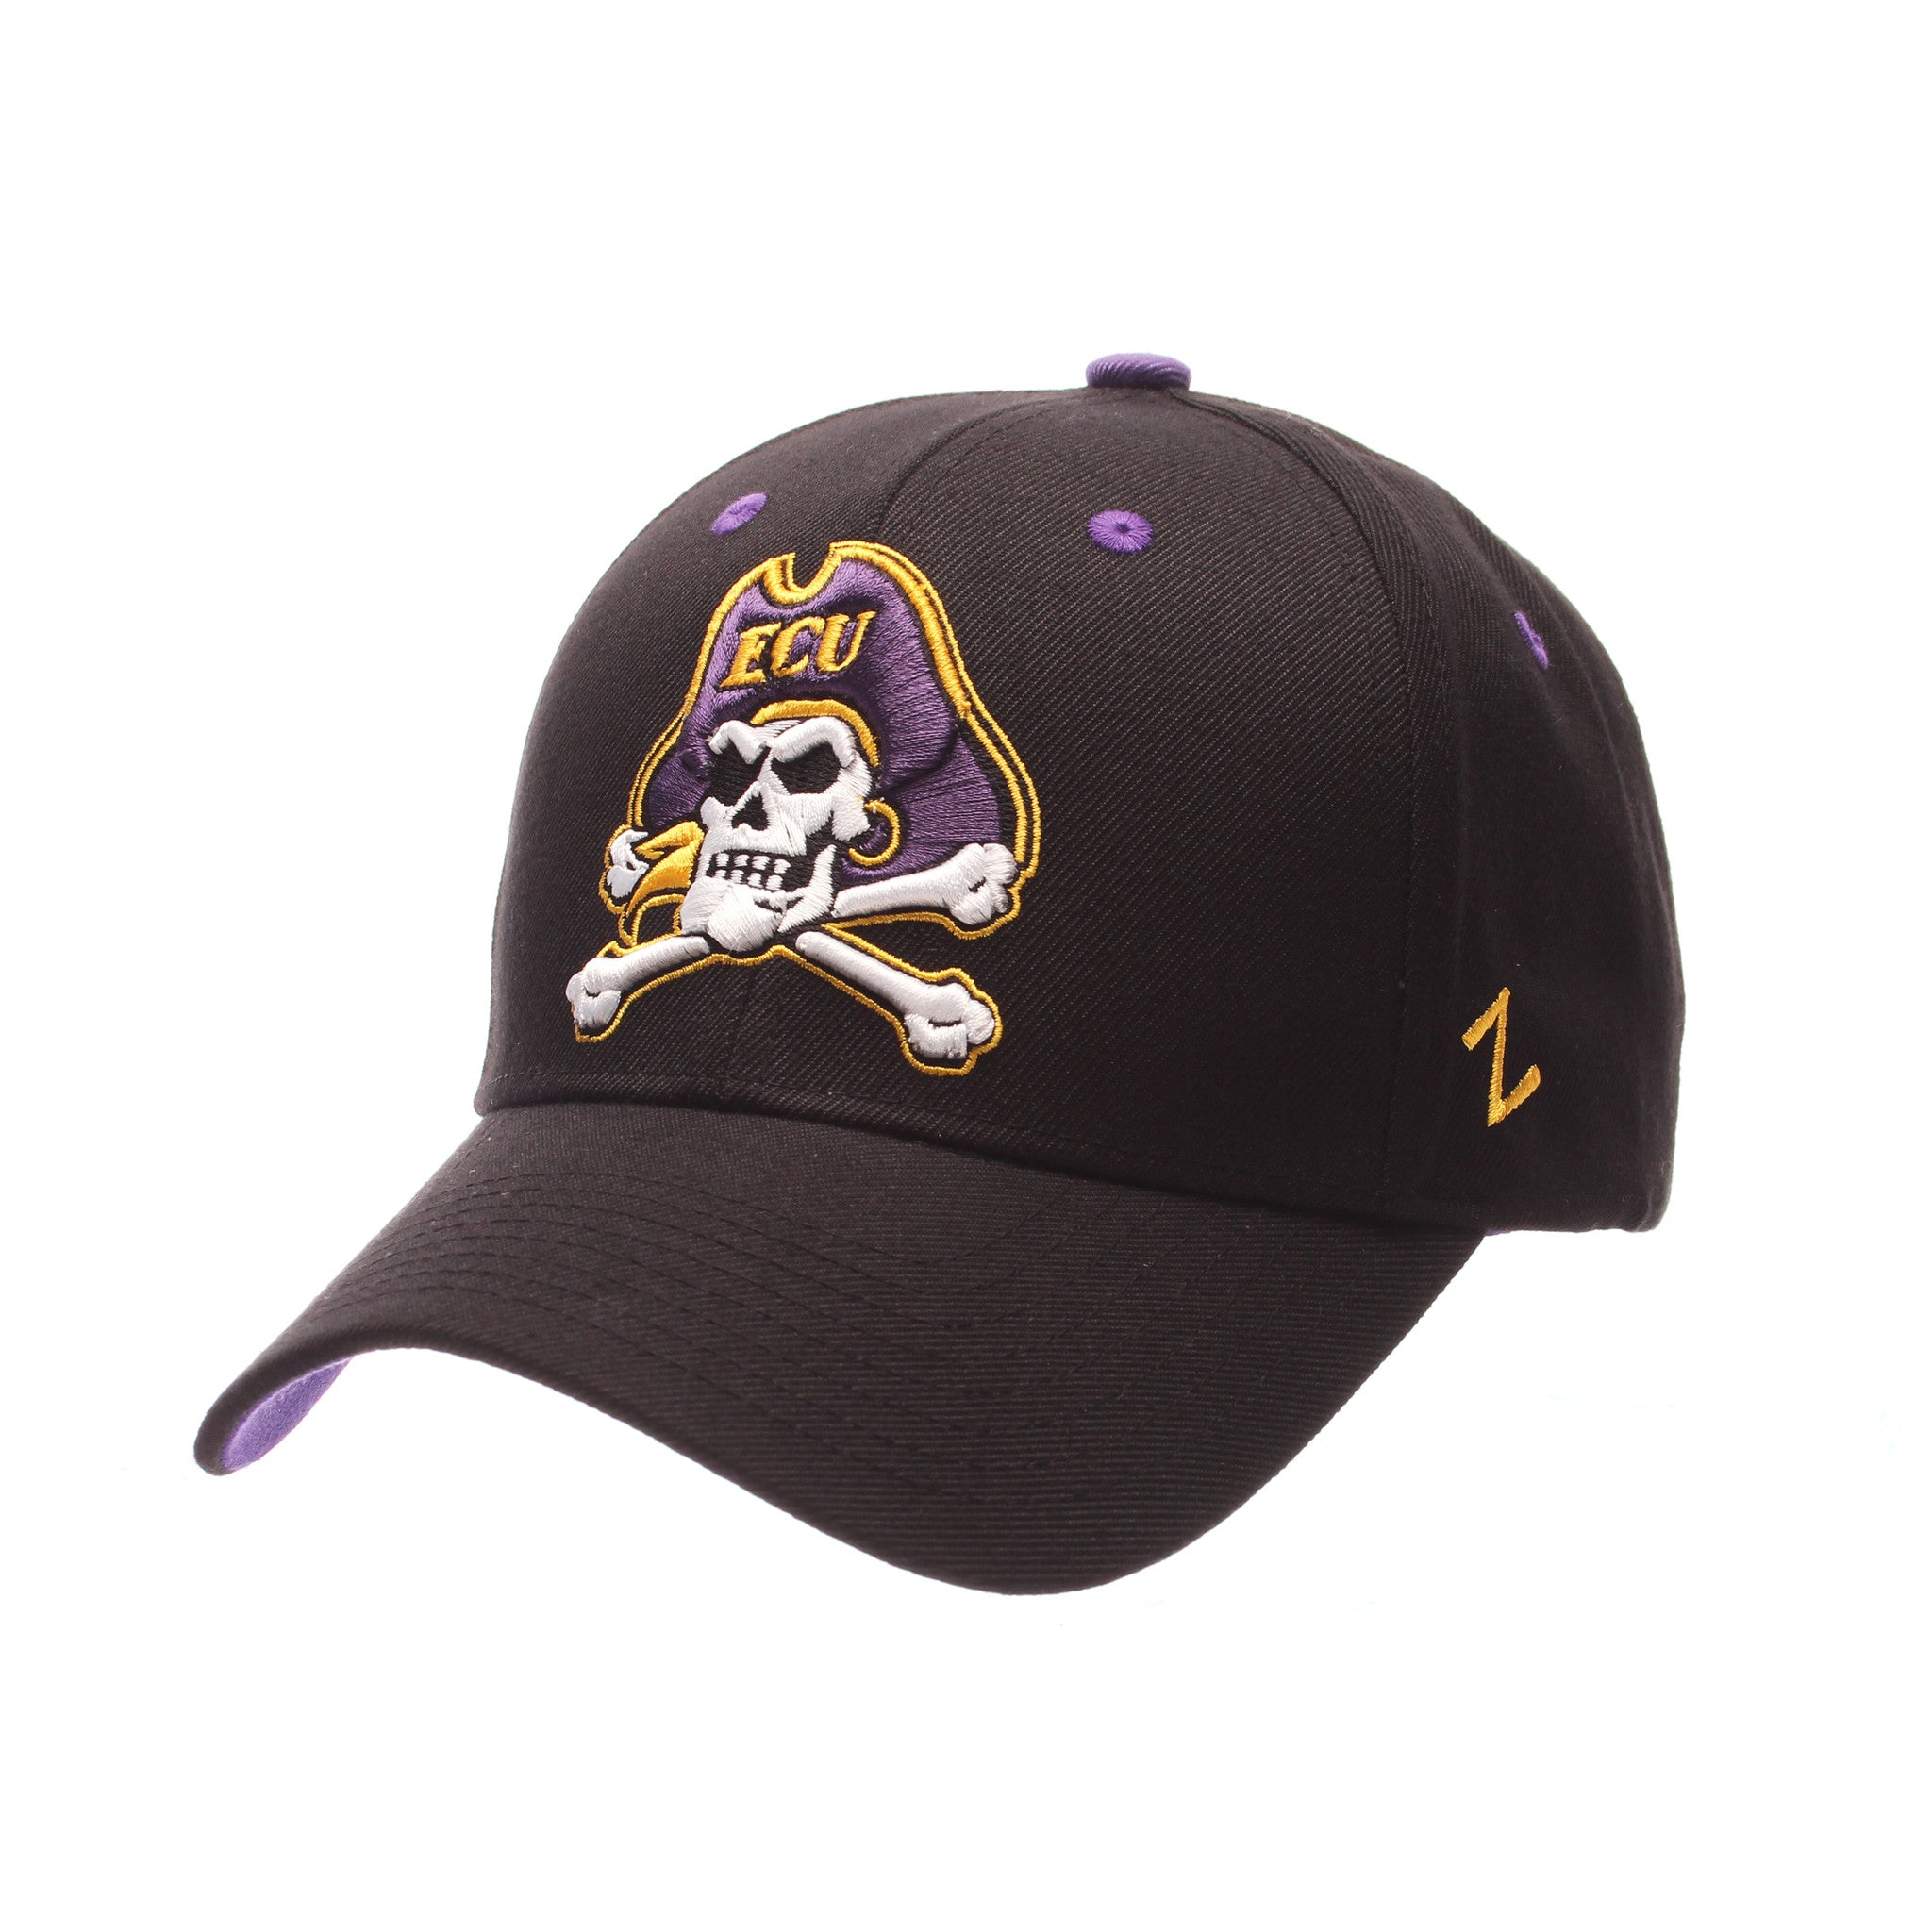 East Carolina University Competitor Standard (Low) (JOLLY ROGER) Black Zwool Adjustable hats by Zephyr